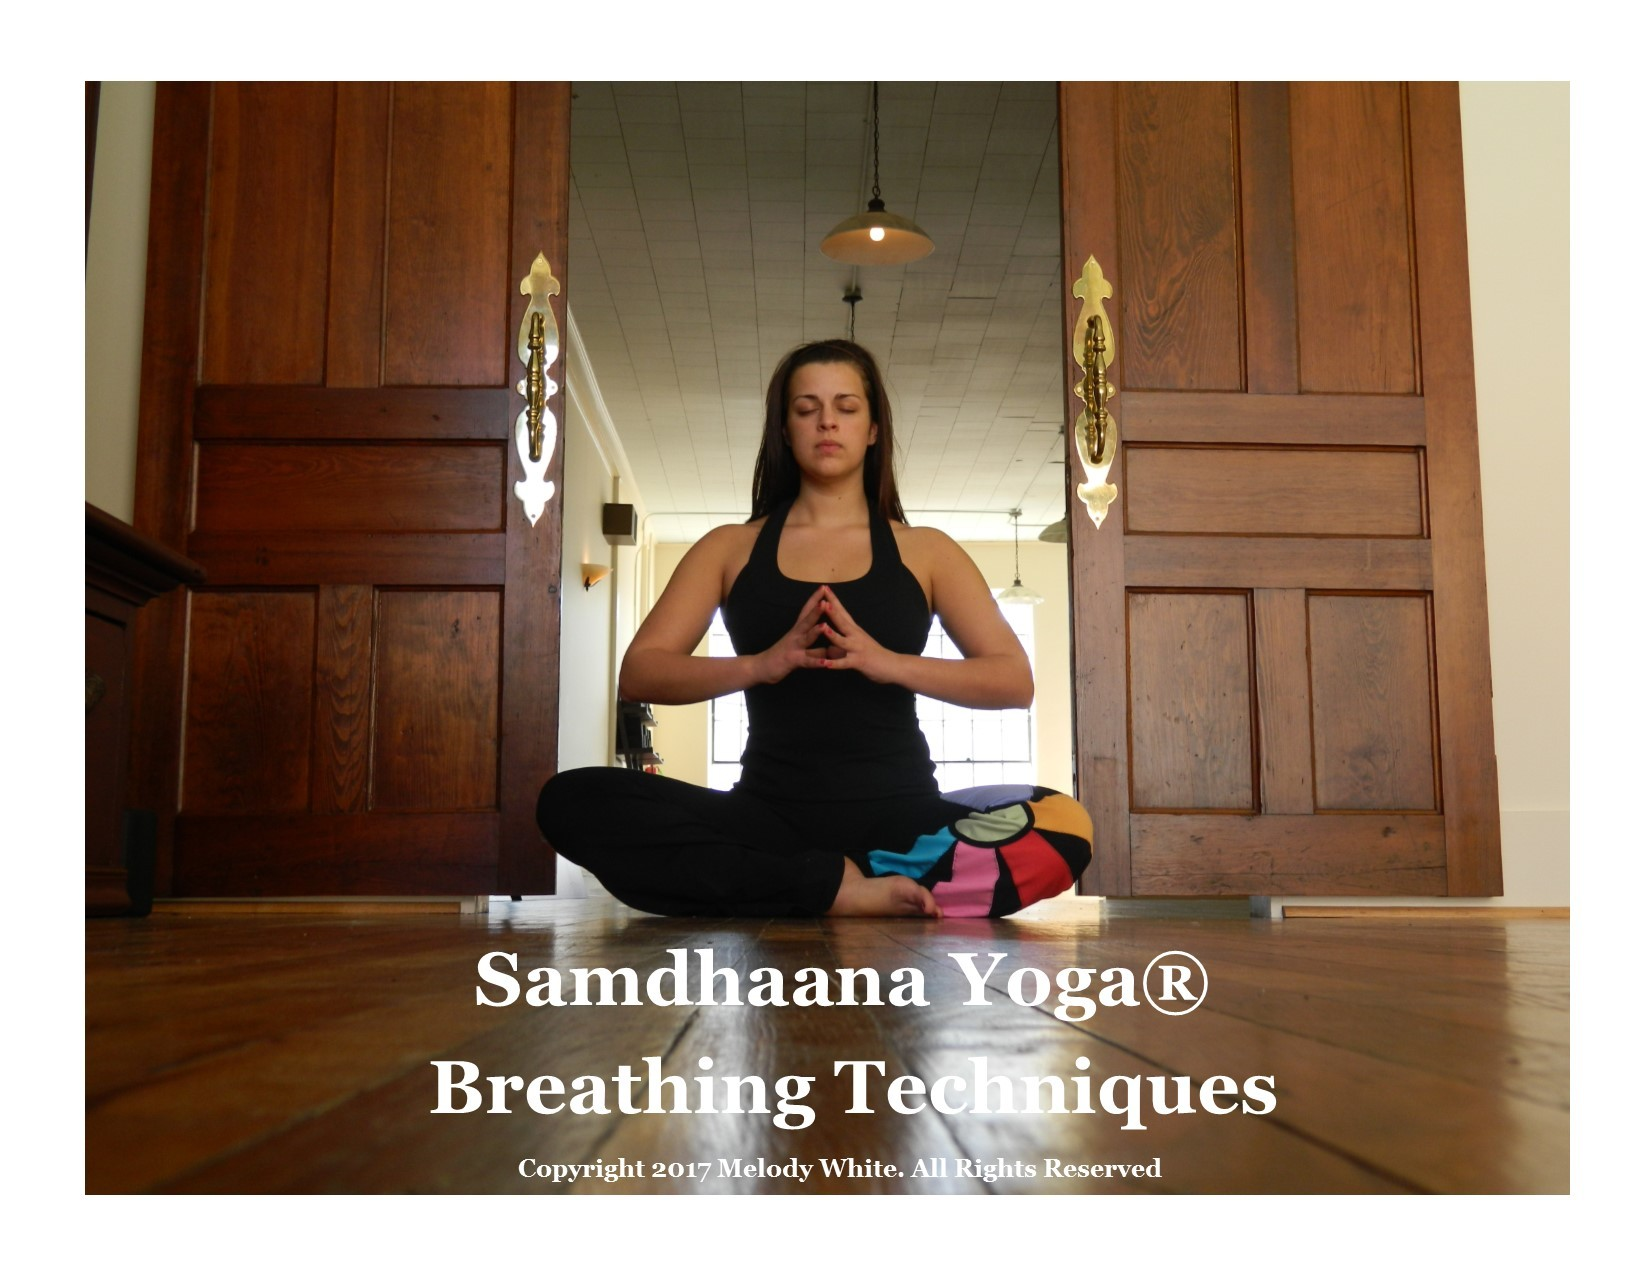 samdhaana yoga 3 part breath